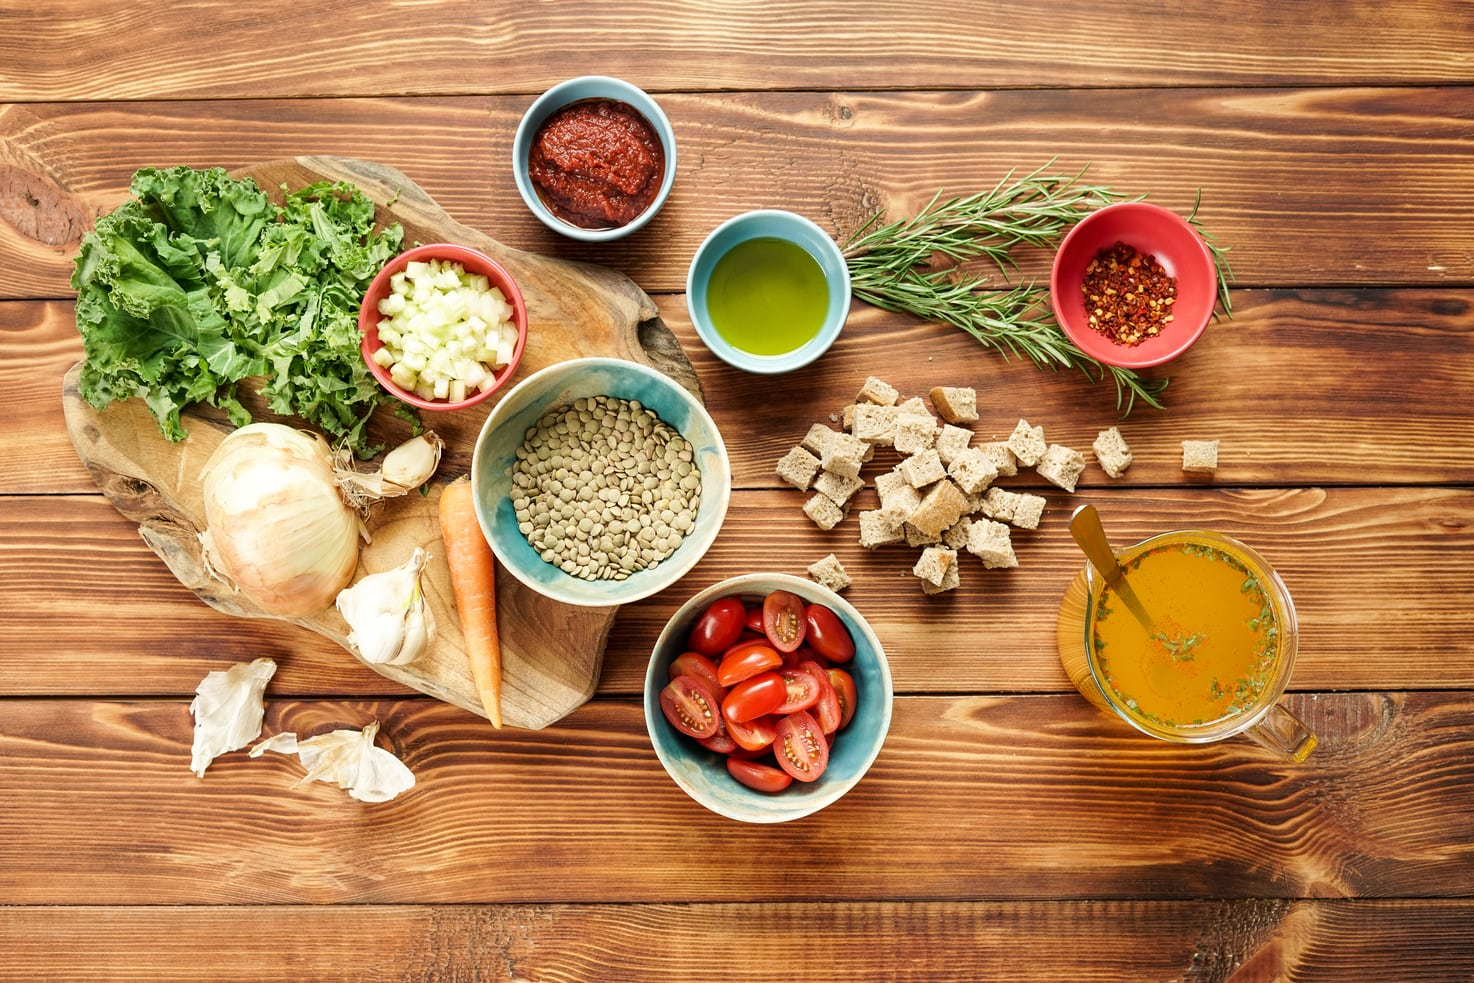 The ingredients for the lentil vegetable soup are laid out on a wooden table. These include stock, chopped bread, chilli flakes, olive oil, sprigs of rosemary, green lentils, chopped onion, tomato paste, chopped kale, a small carrot and some garlic   Hurry The Food Up